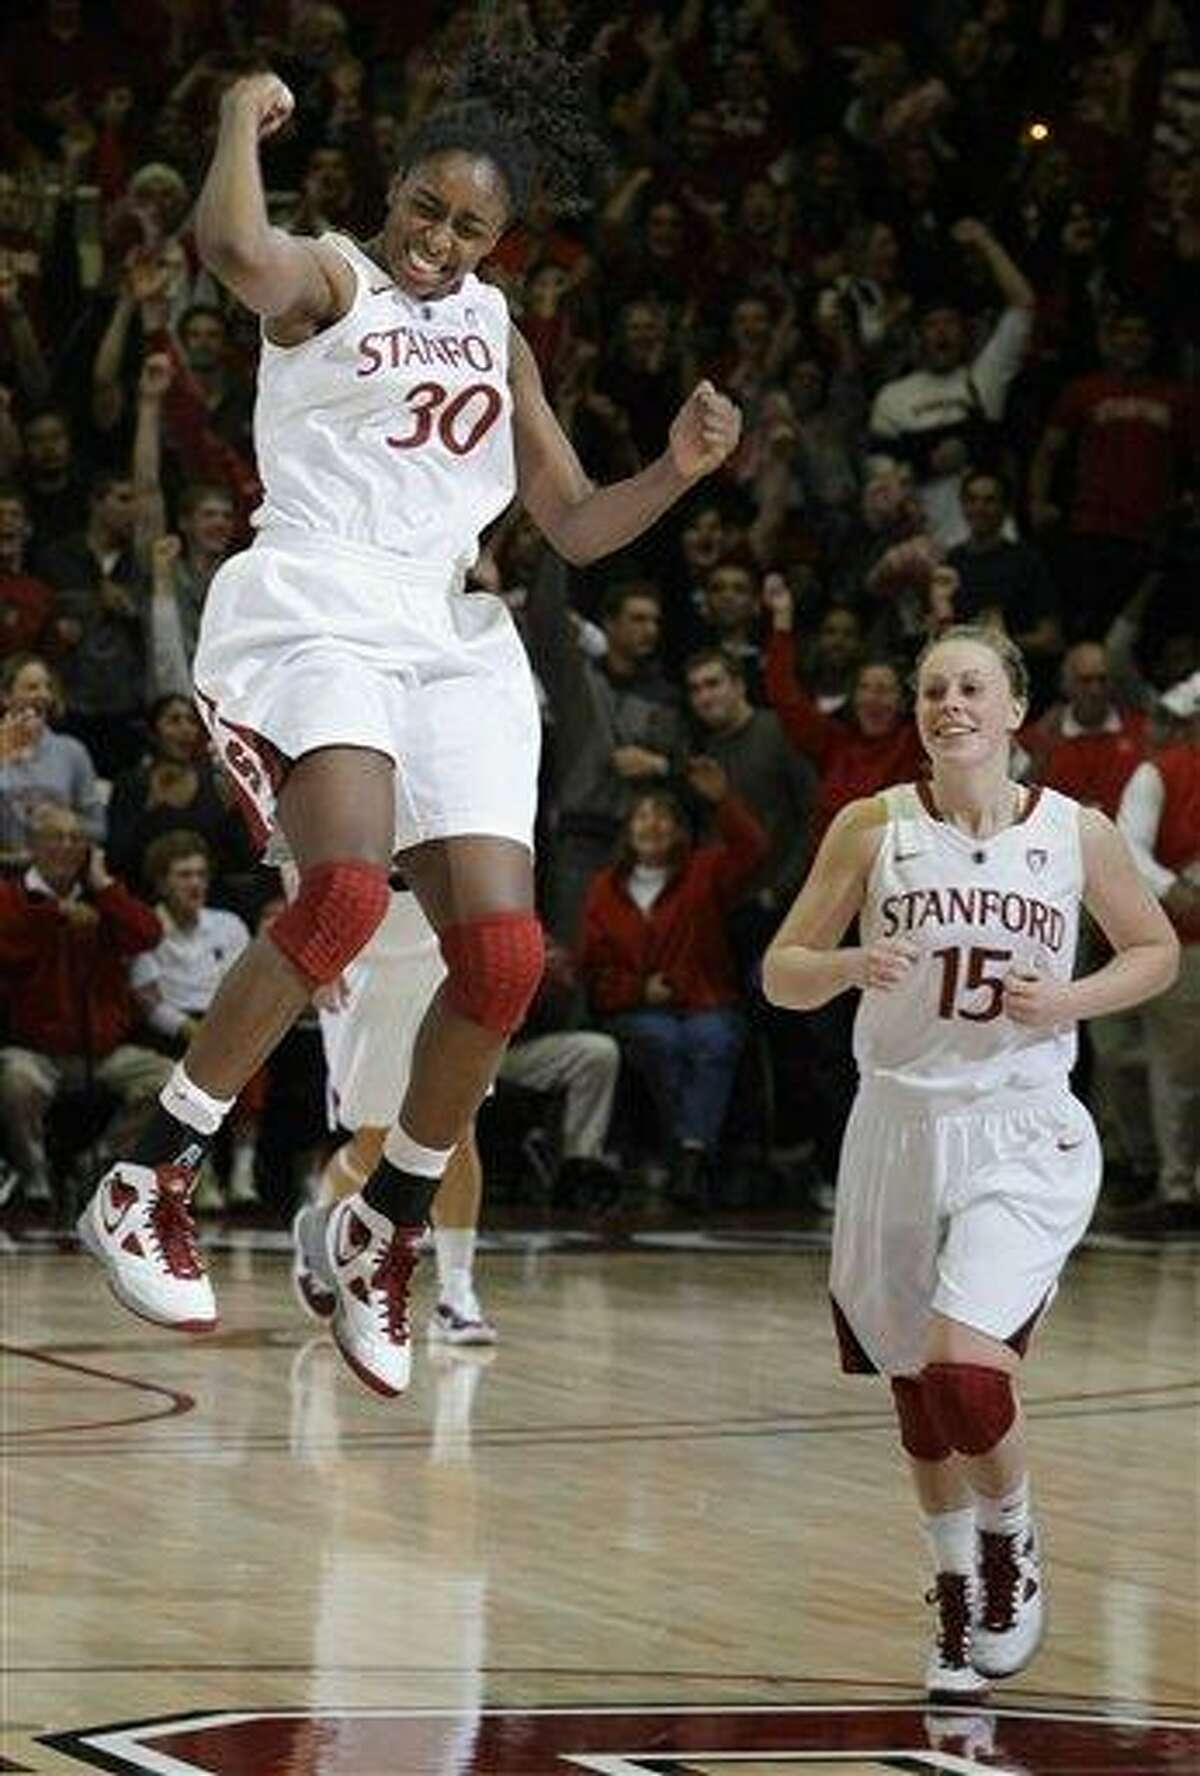 Stanford forward Nnemkadi Ogwumike (30) celebrates with guard Lindy La Rocque (15) after an NCAA college basketball game in Stanford, Calif., Thursday, Dec. 30, 2010. Stanford upset Connecticut 71-59, ending Connecticut's winning streak at 90 games. (AP Photo/Paul Sakuma)